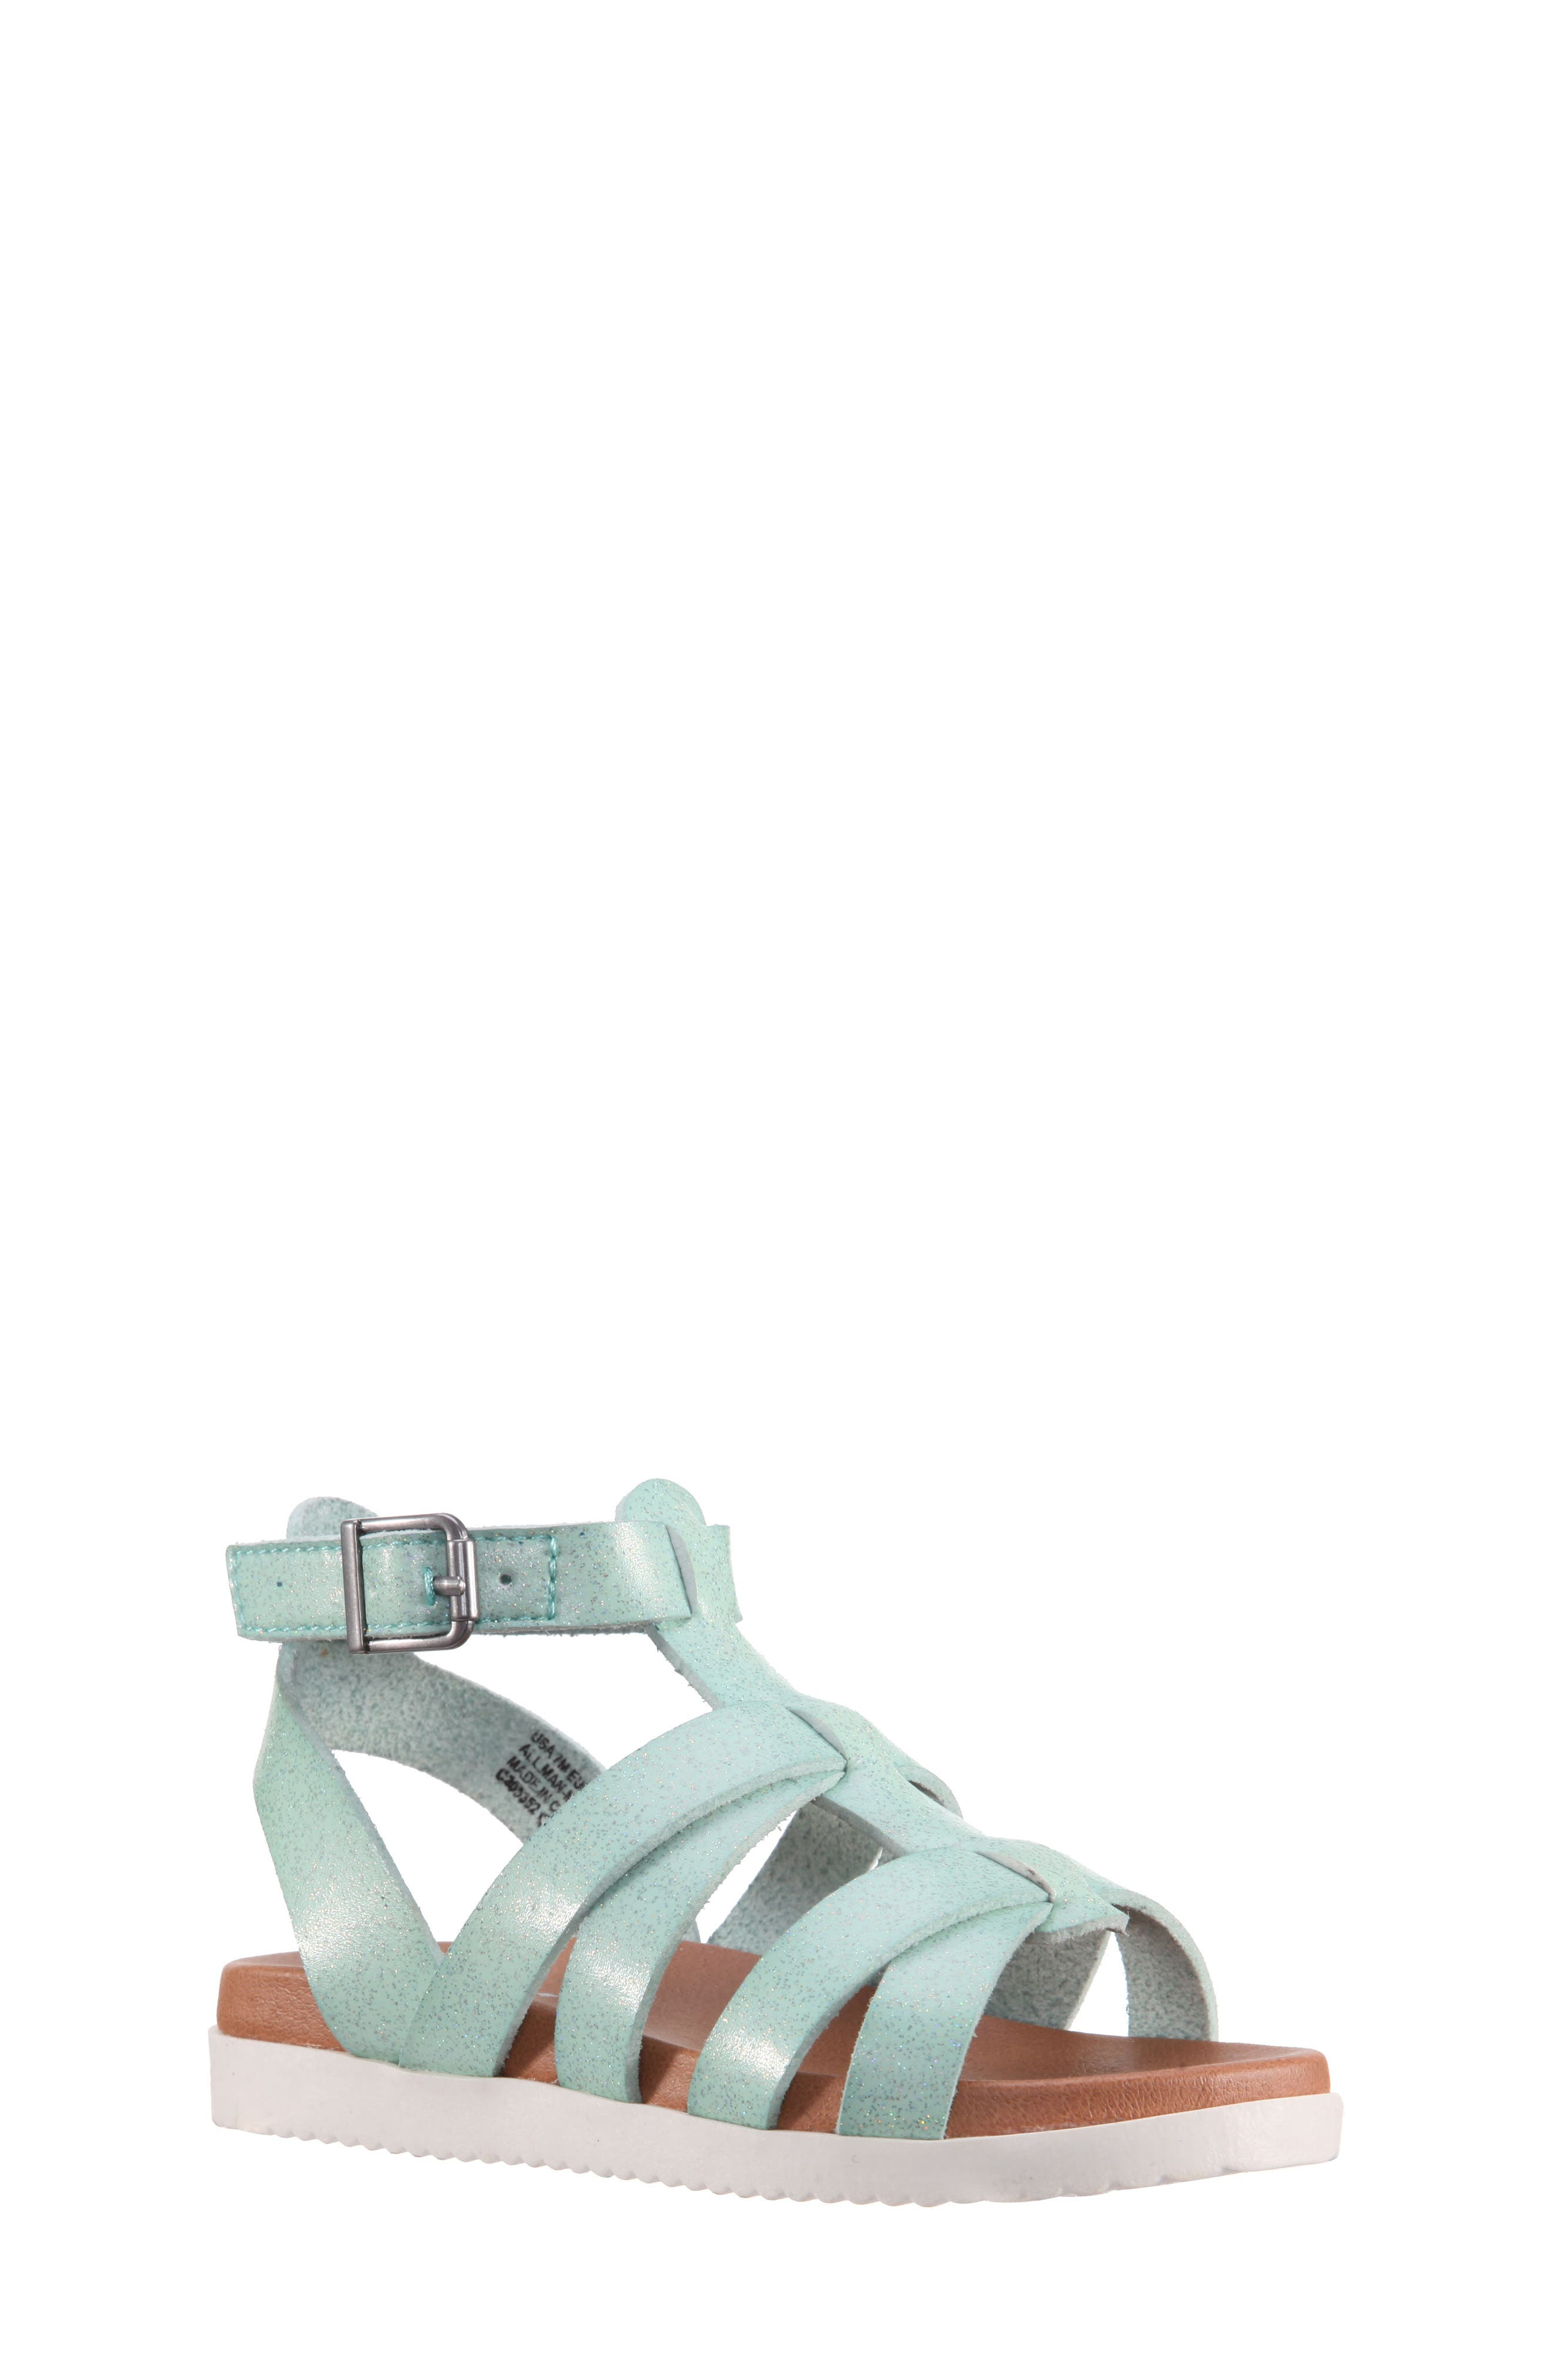 Alpha Gladiator Sandal,                             Main thumbnail 1, color,                             365